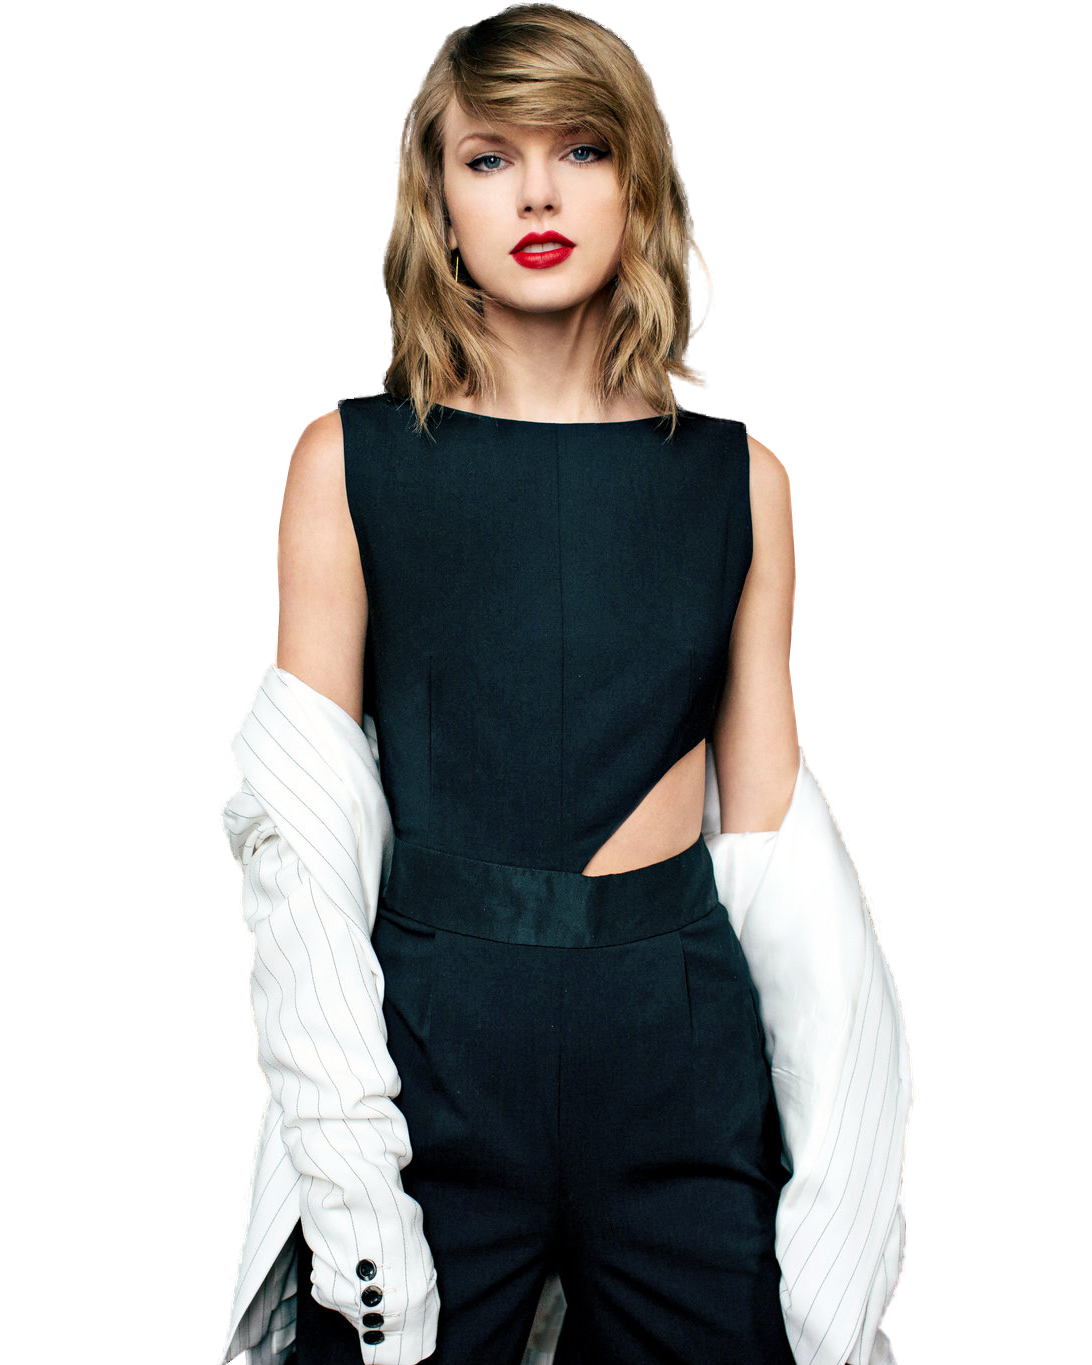 Taylor Swift PNG 1989 - 59115